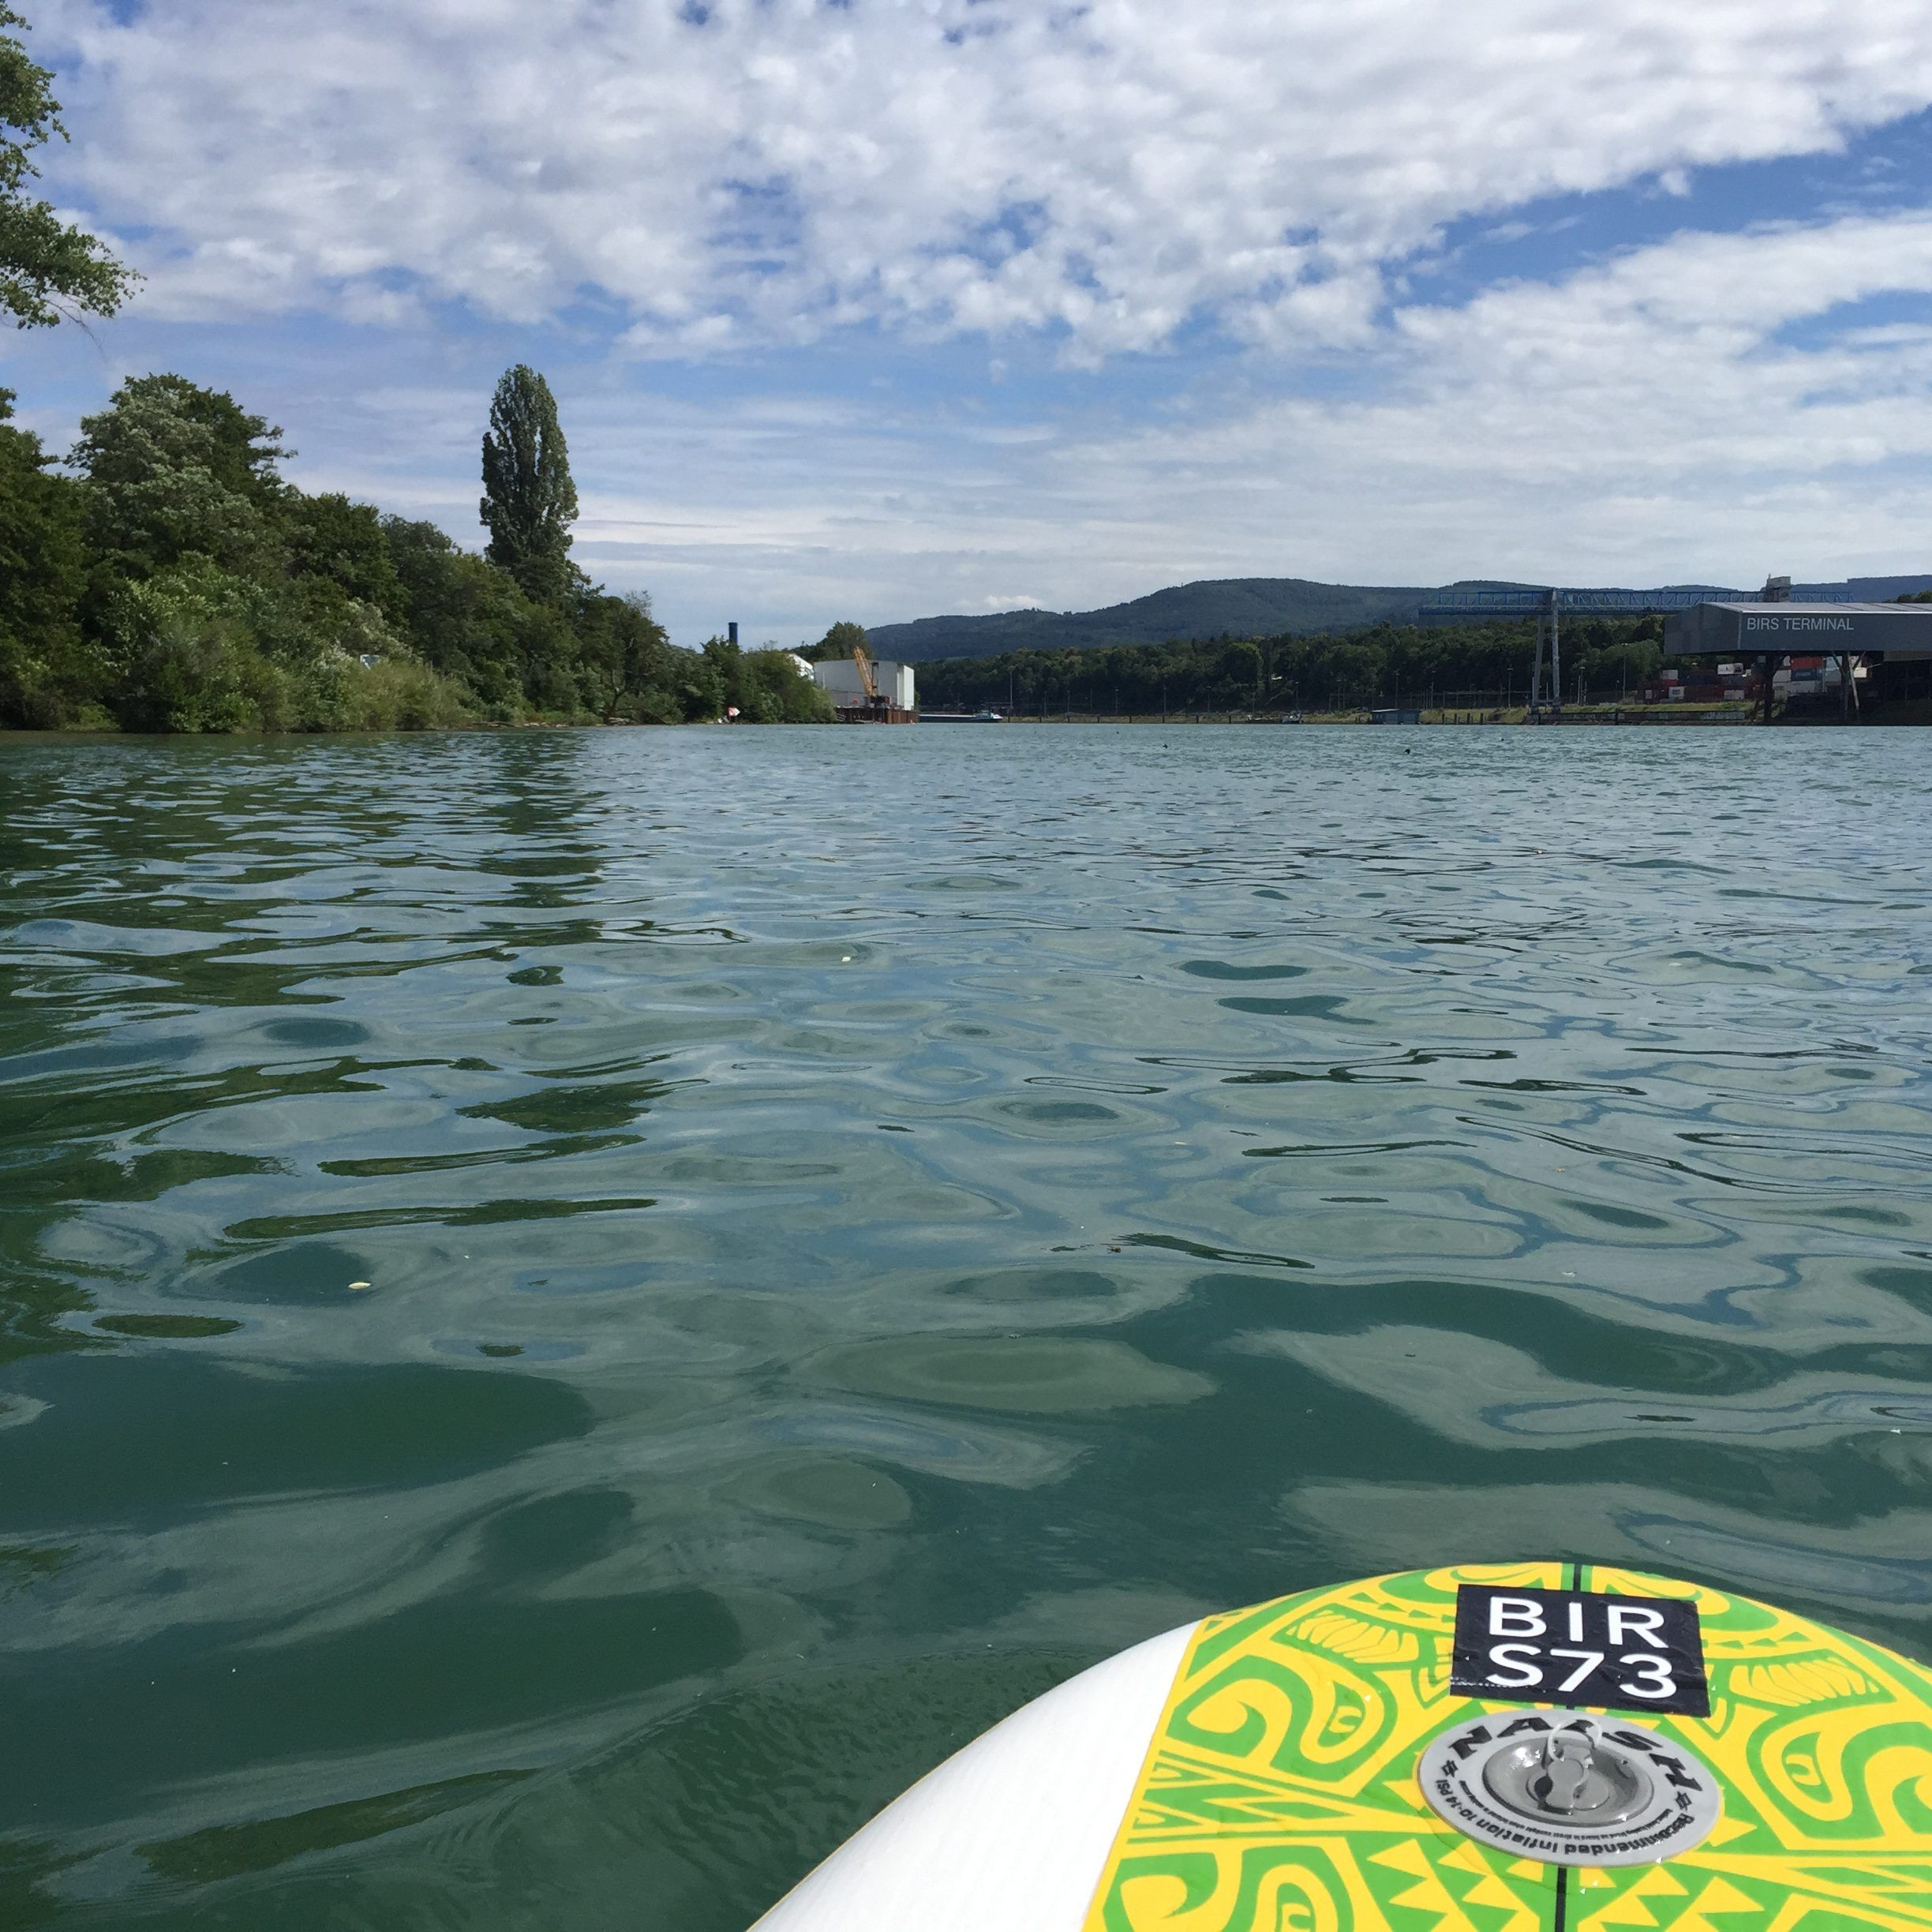 Birs 73 Stand Up Paddle (SUP) Kurs in Basel